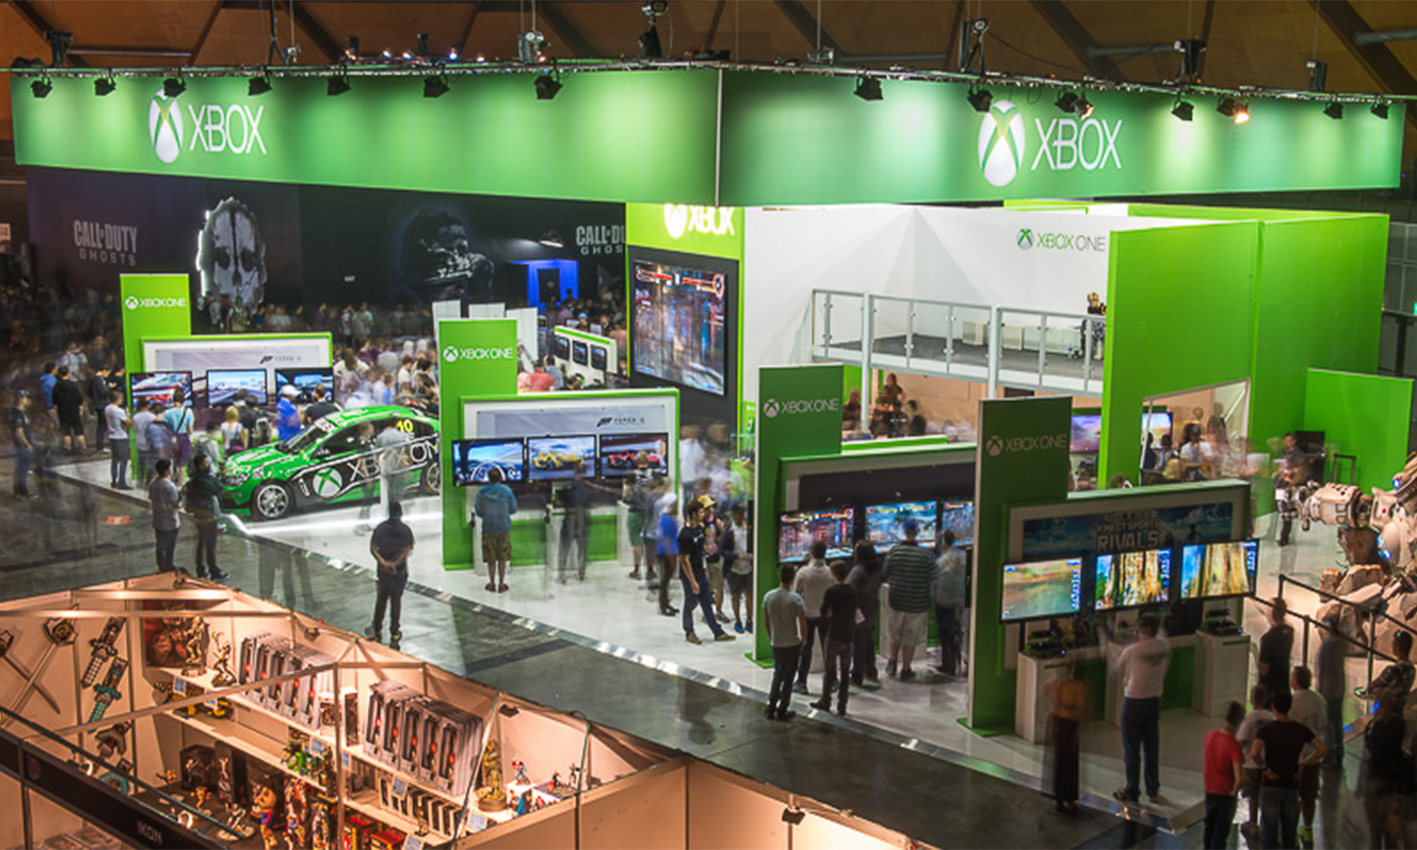 Microsoft+XBOX+Exhibition+Stand+at+EB+Games+view3